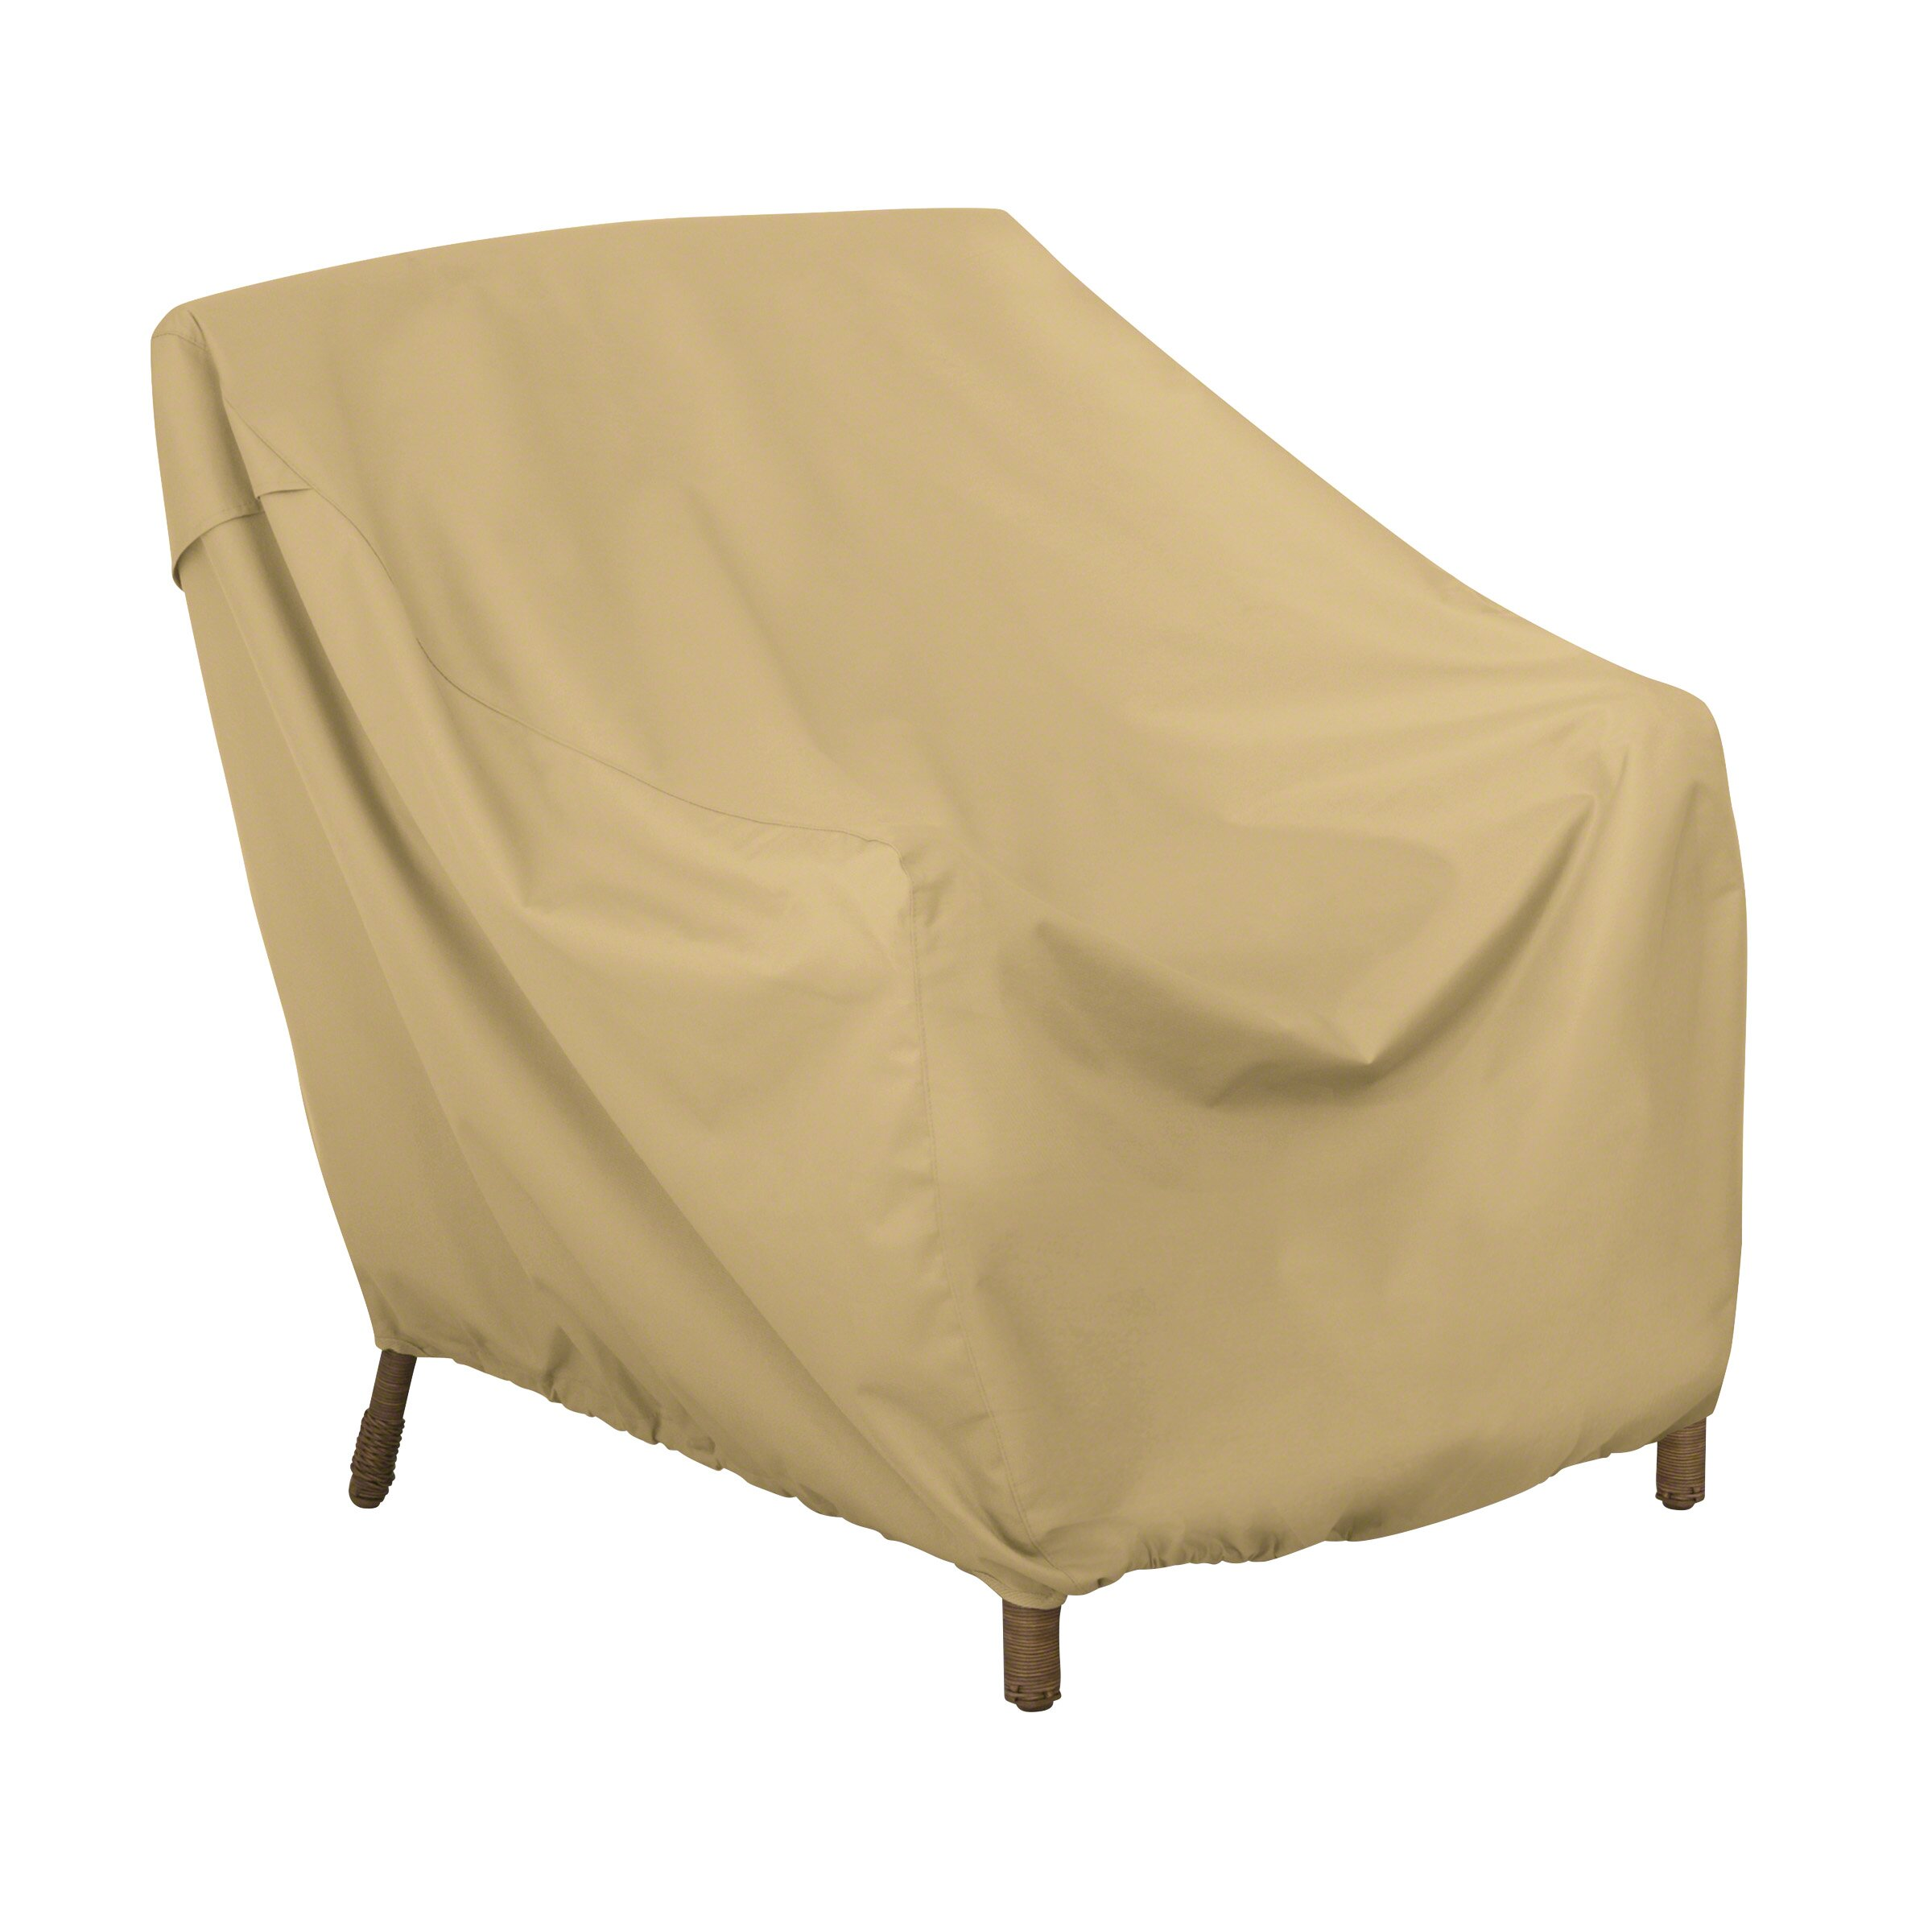 Classic Accessories Terrazzo Lounge Chair Cover